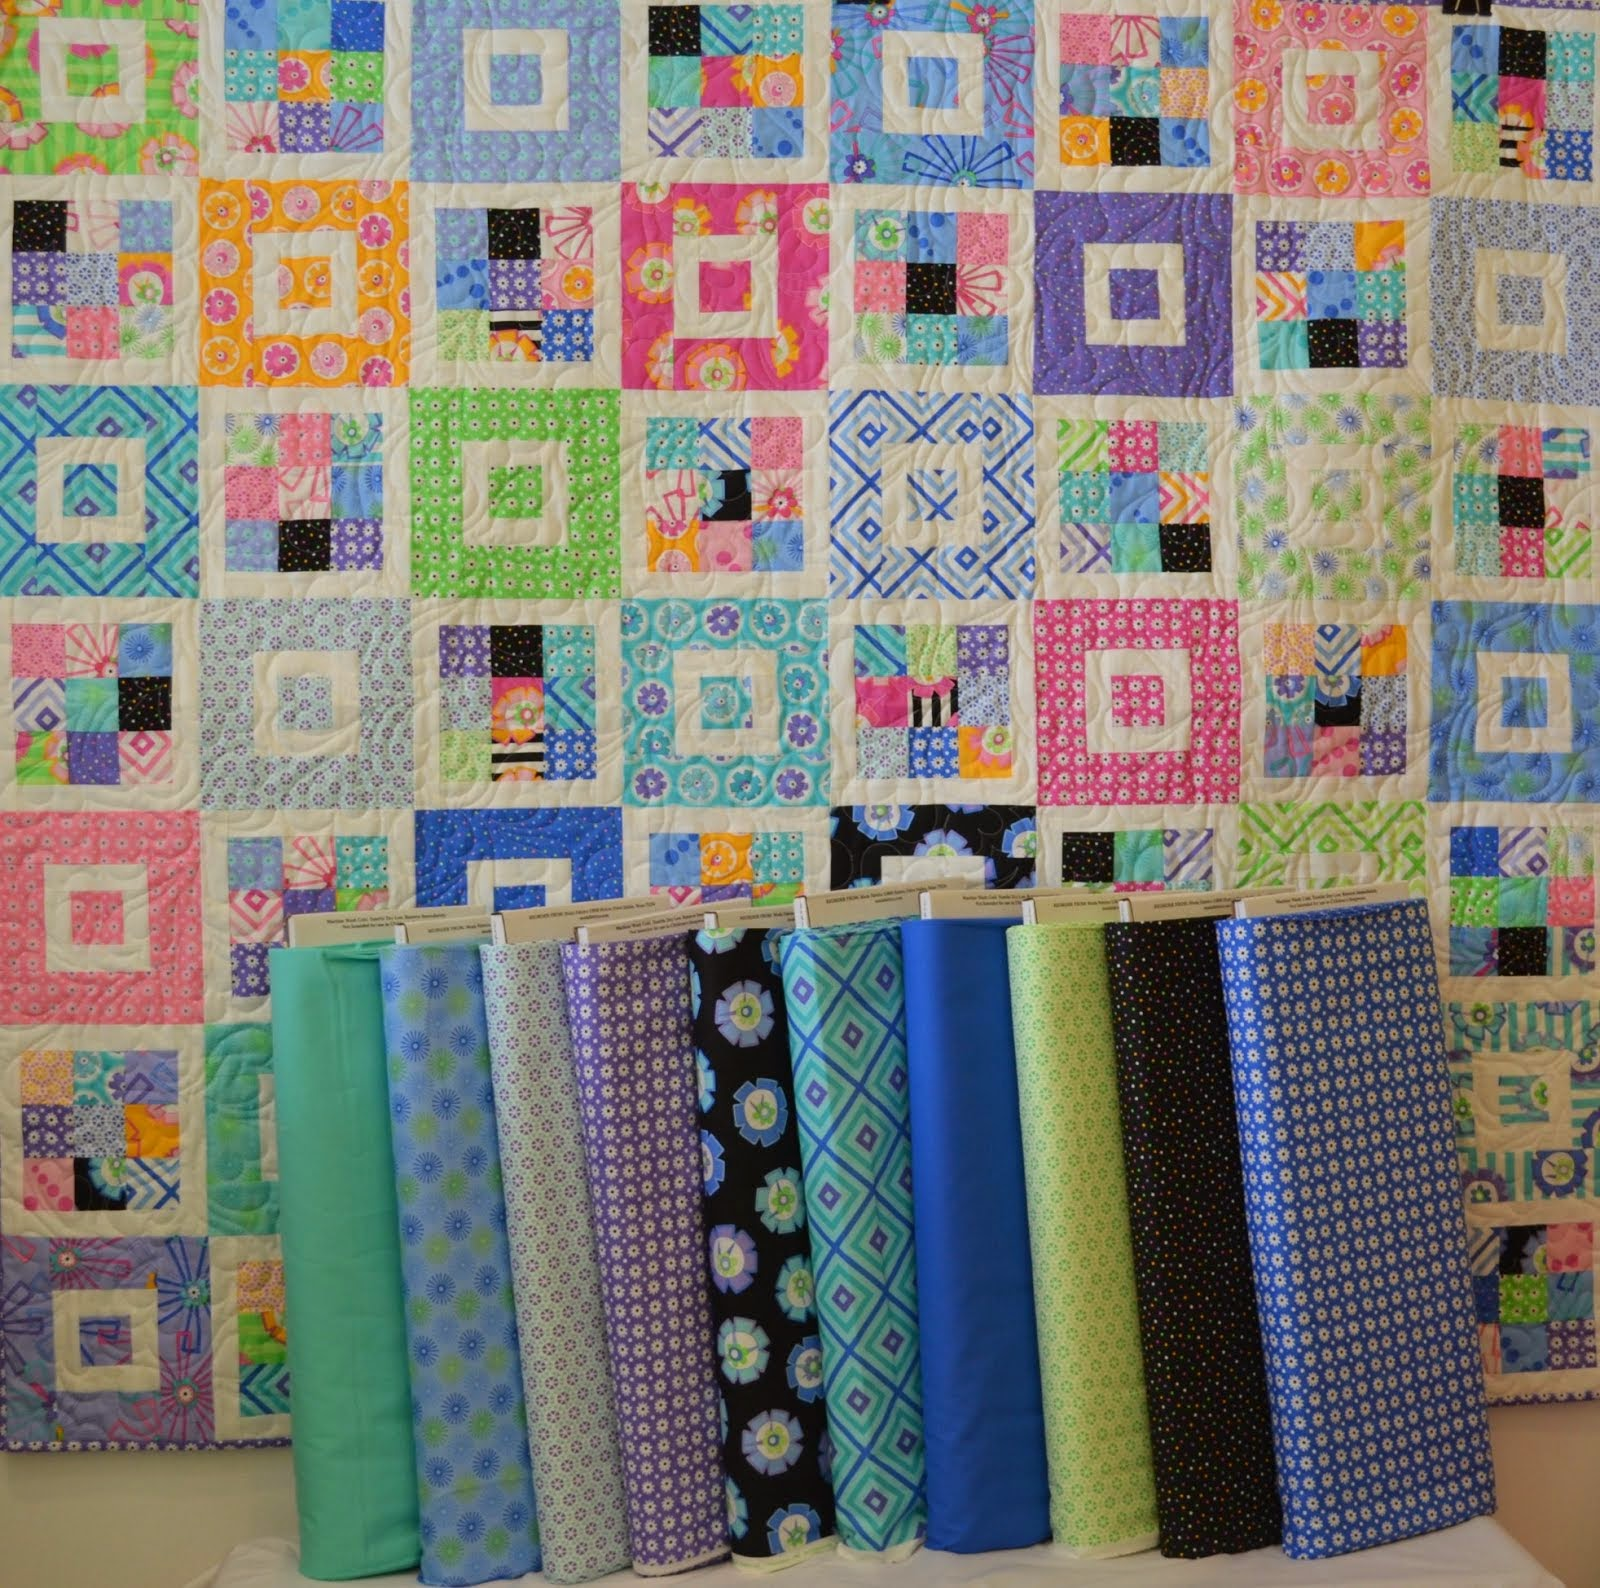 Kits available at Stitchin' It Up Quilt Shop